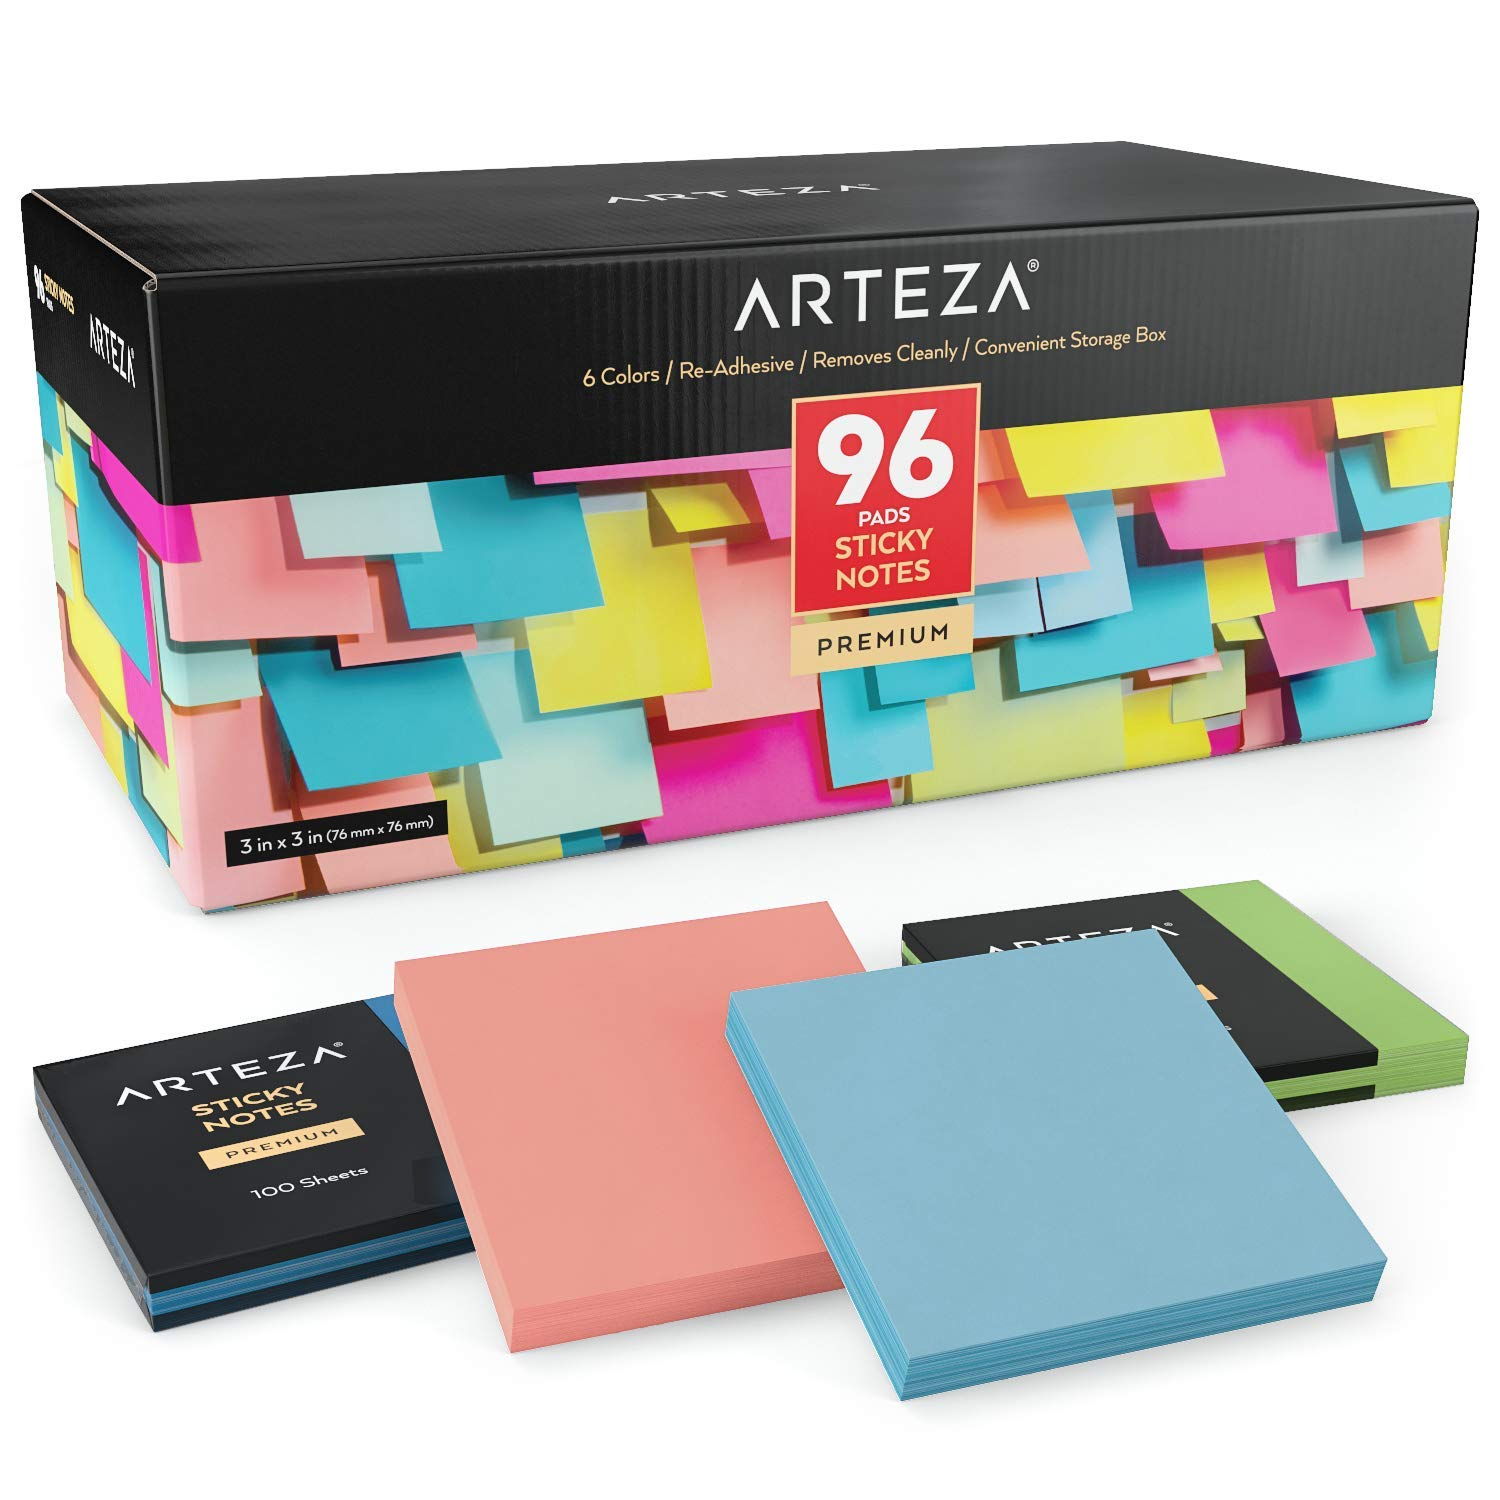 ARTEZA 3x3 Inches Sticky Notes, 96 Pads, 100 Sheets Per Pad, Bulk Pack, Assorted Colors, Re-Adhesive, Clean Removal, for Reminders, Studying, Office, School, and Home by ARTEZA